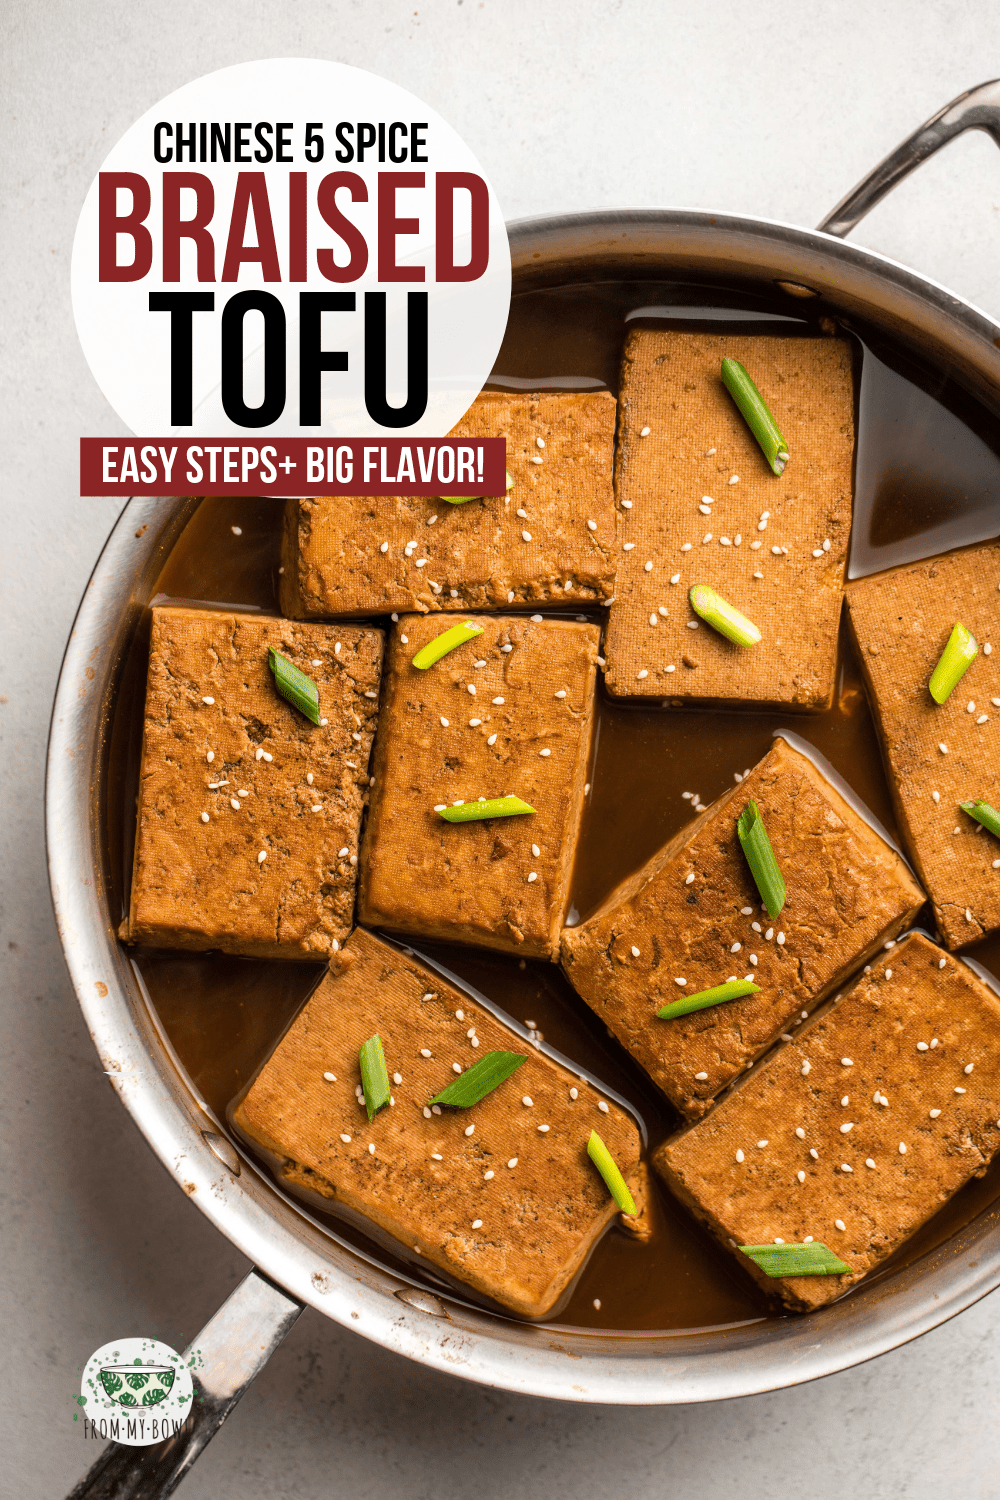 This Chinese Five Spice Braised Tofu is made with only 5 simple ingredients, but brings BIG flavor! Serve it with sushi, grain bowls, summer rolls, and more. #tofu #braisedtofu #fivespice #chinesetofu #tofurecipes | frommybowl.com